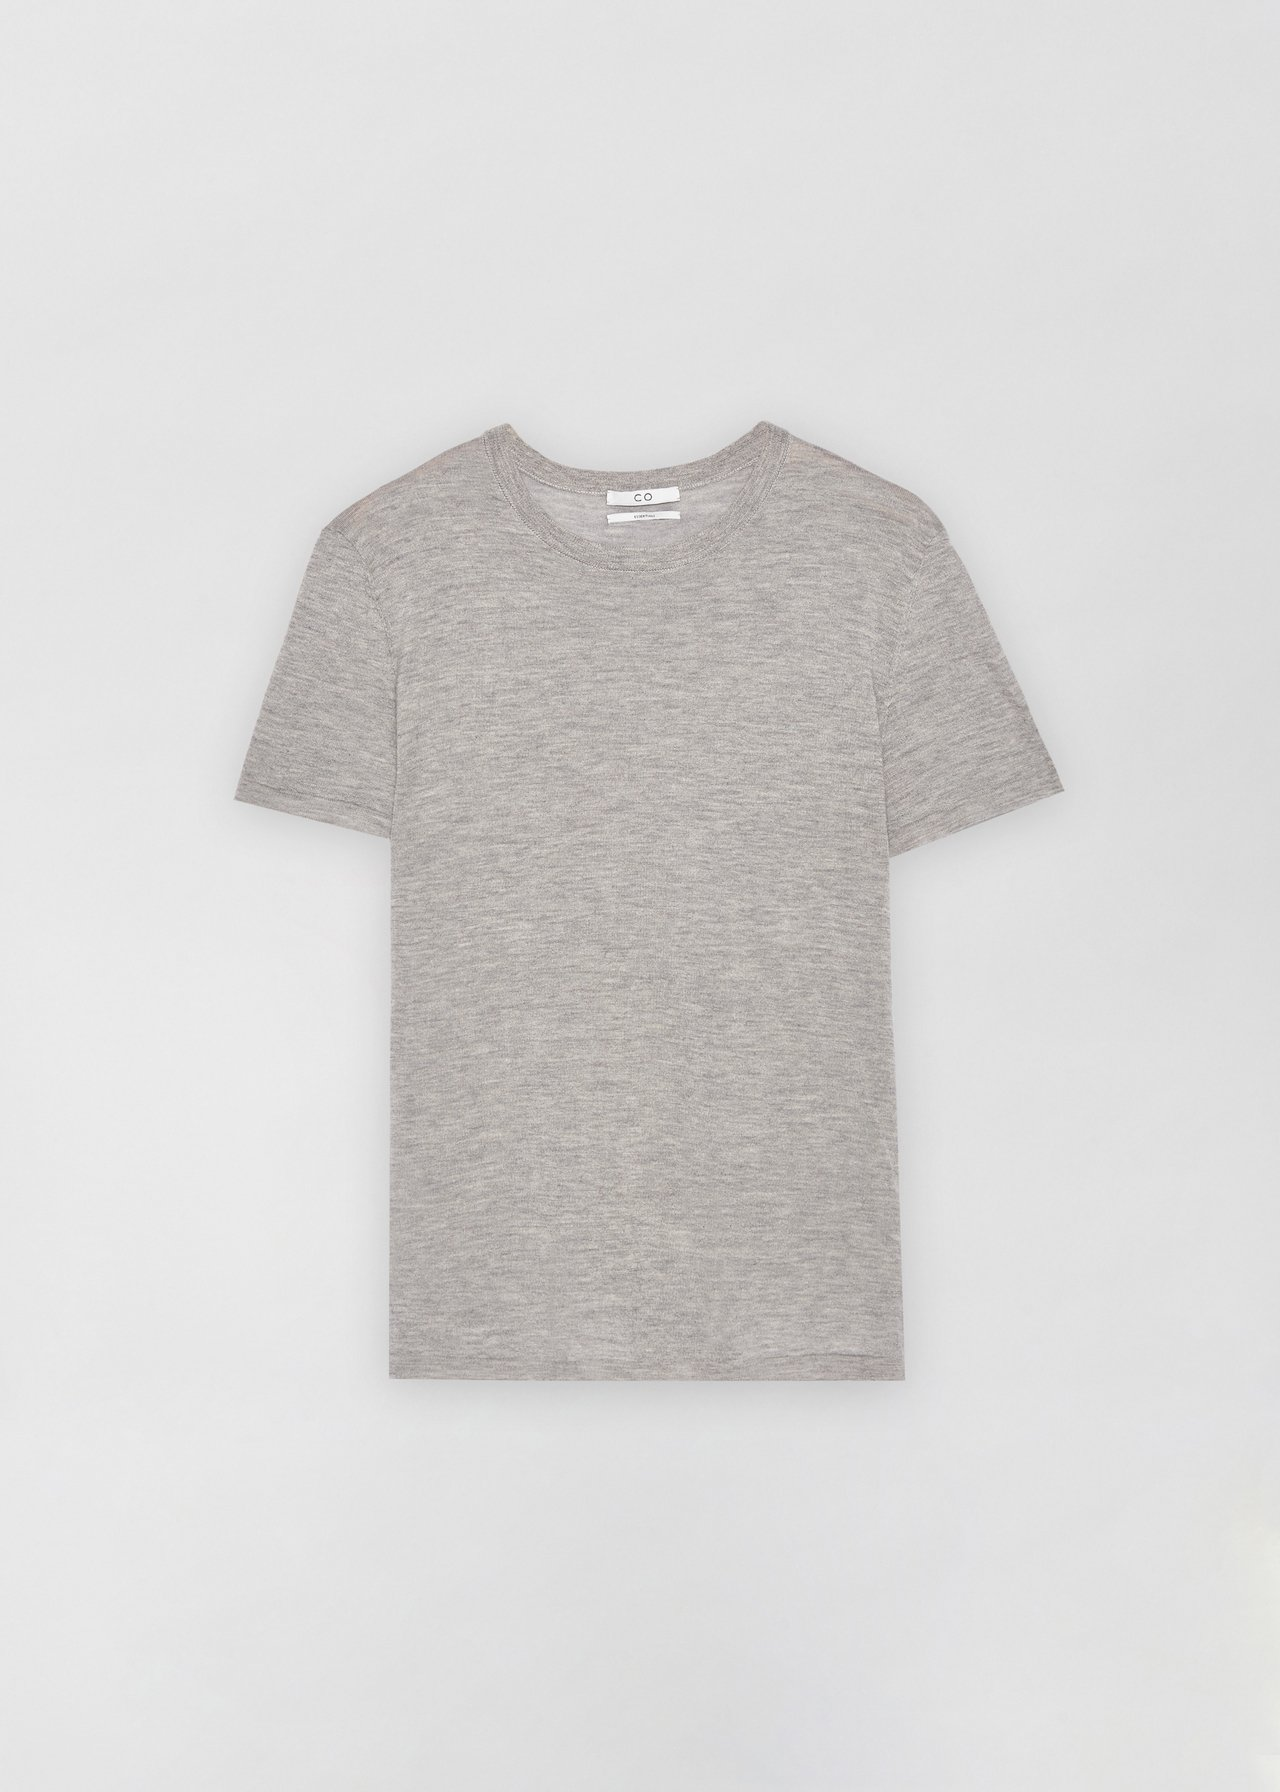 Cashmere T-Shirt - Navy in Heather by Co Collections